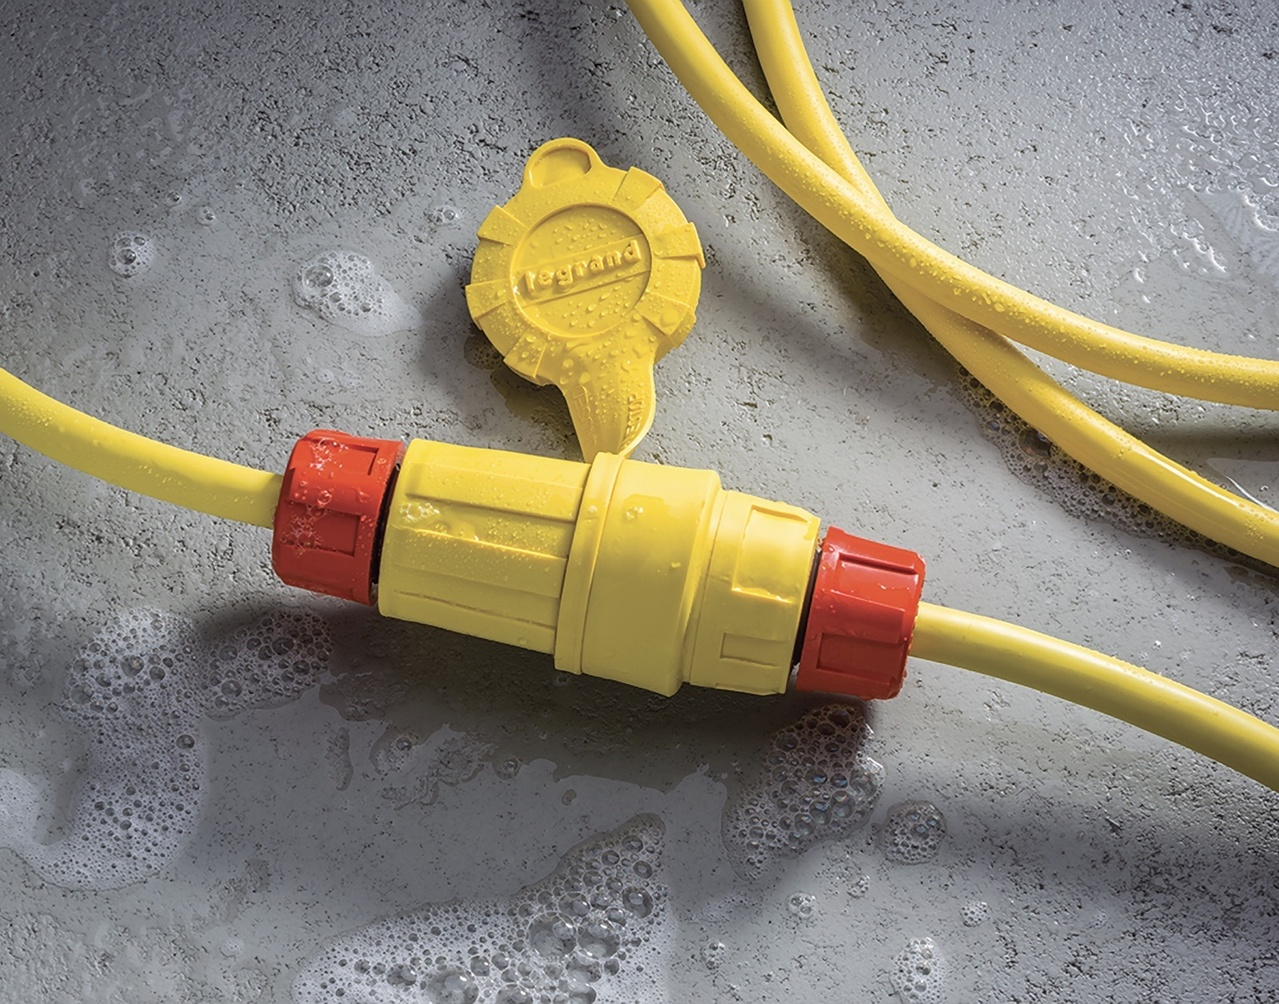 Yellow and orange Steriguard antimicrobial plugs and connectors